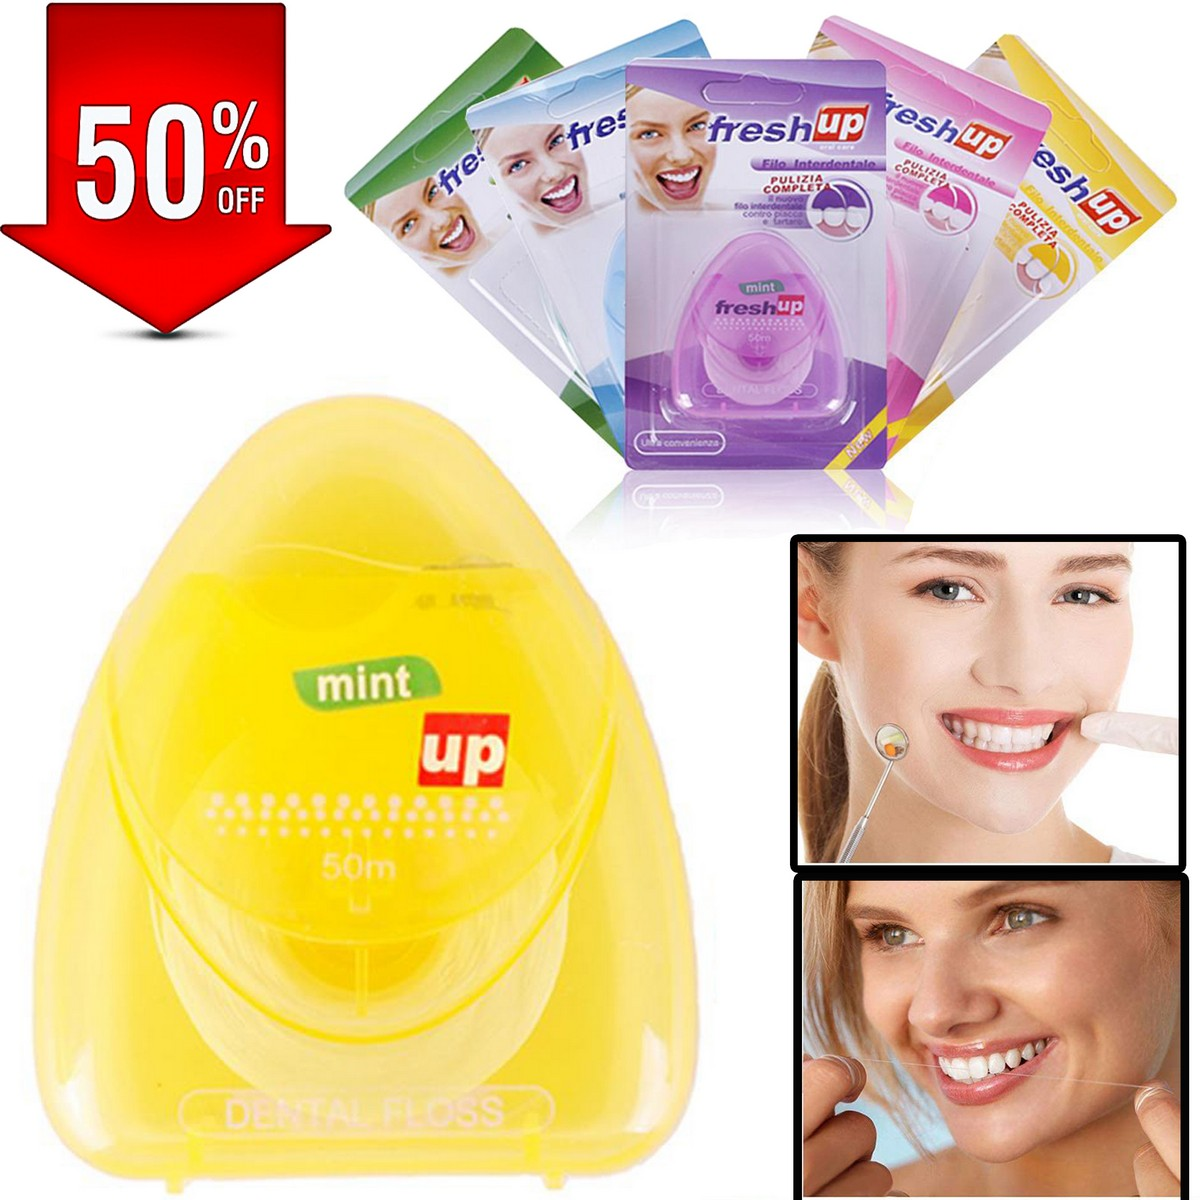 Dental Floss Micro Wax Peppermint flavor Mint Flavour Freshup Flosser Interdental Brush portable oral hygiene care Freshup flat clean teeth wire Flossier 50M Best quality floss wire